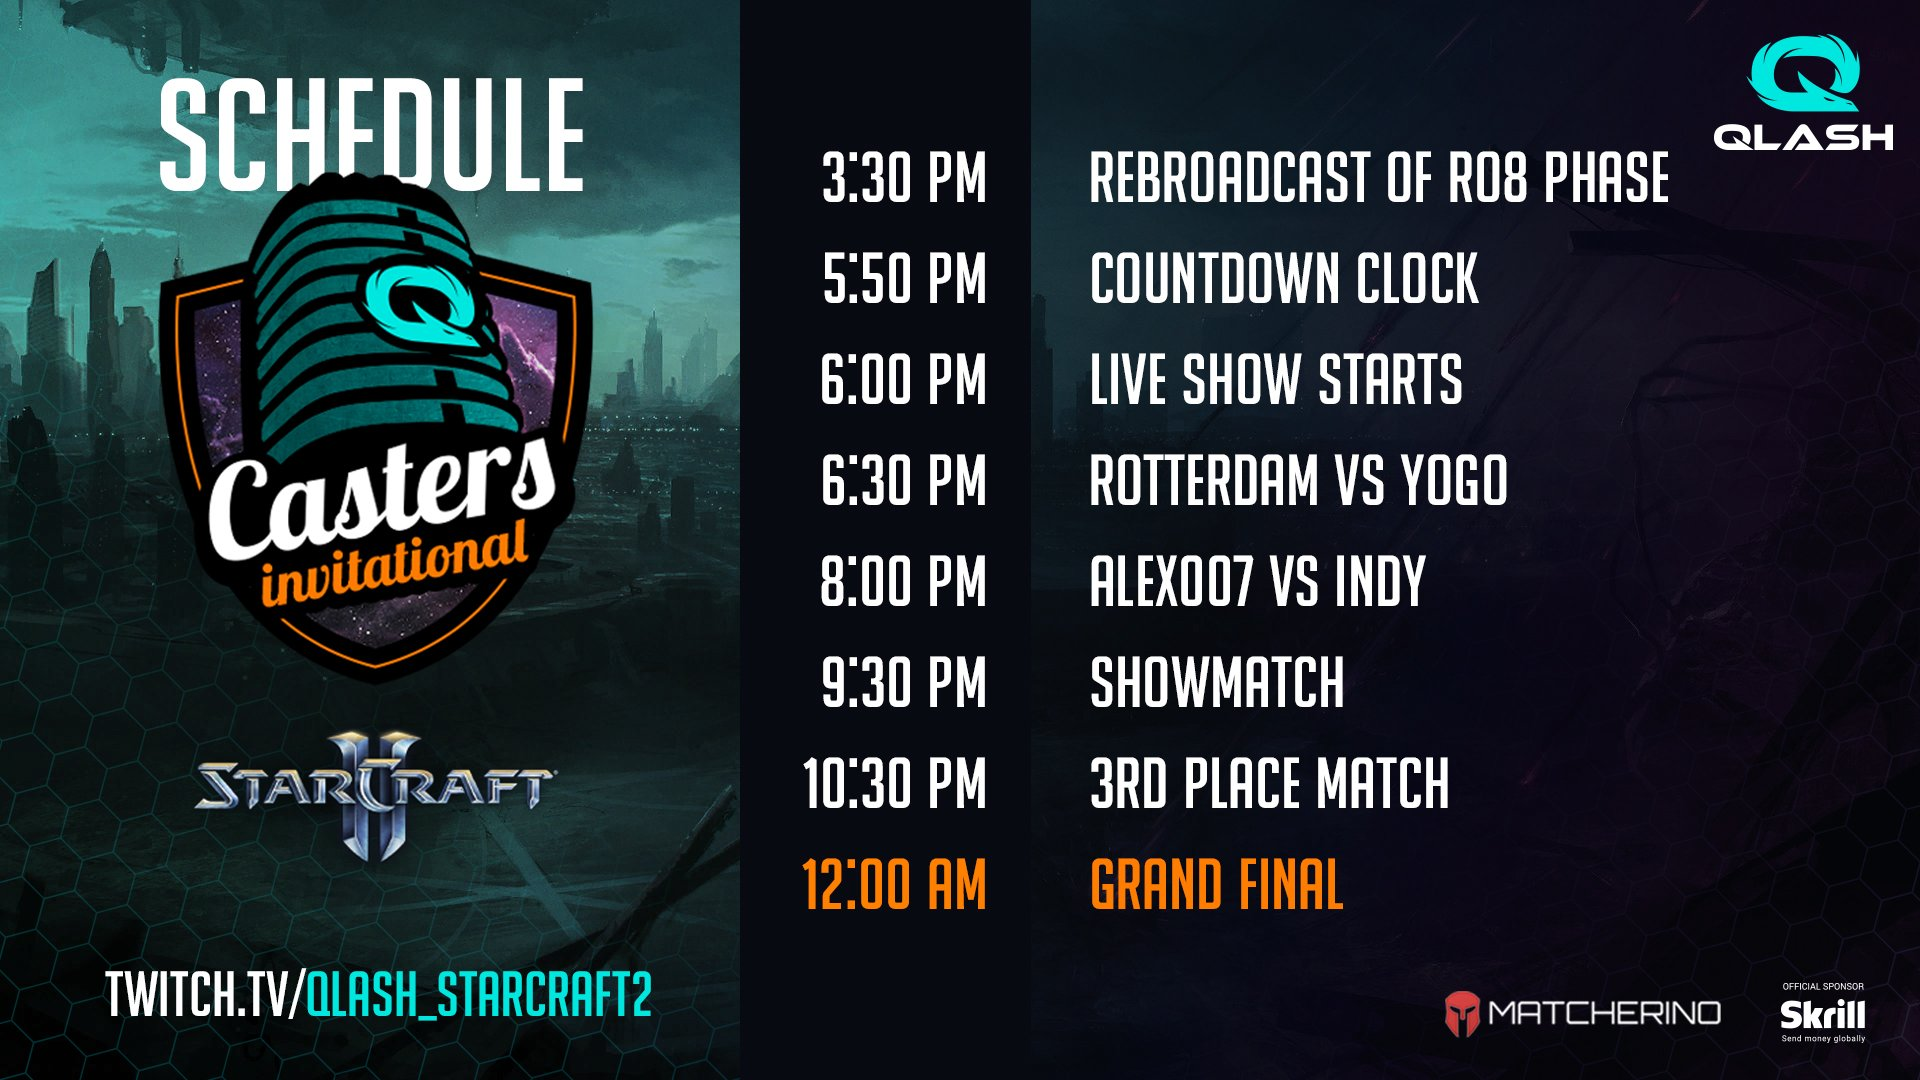 QLASH Casters Invitational Playoff